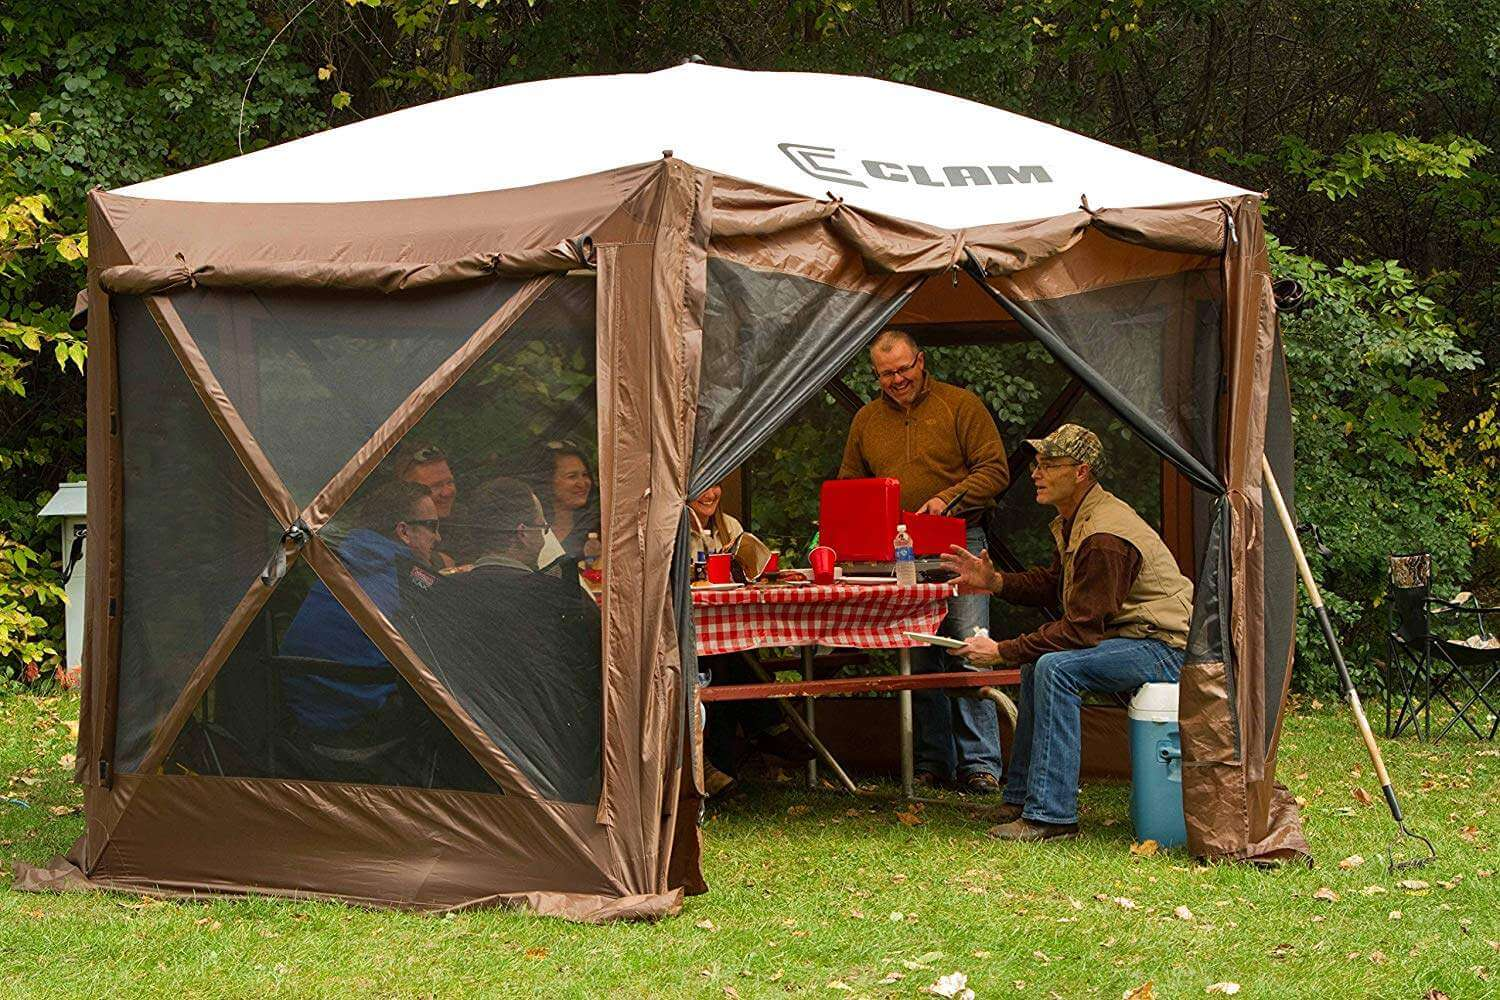 Best Camping Screen House Review Guide Of 2021-2022